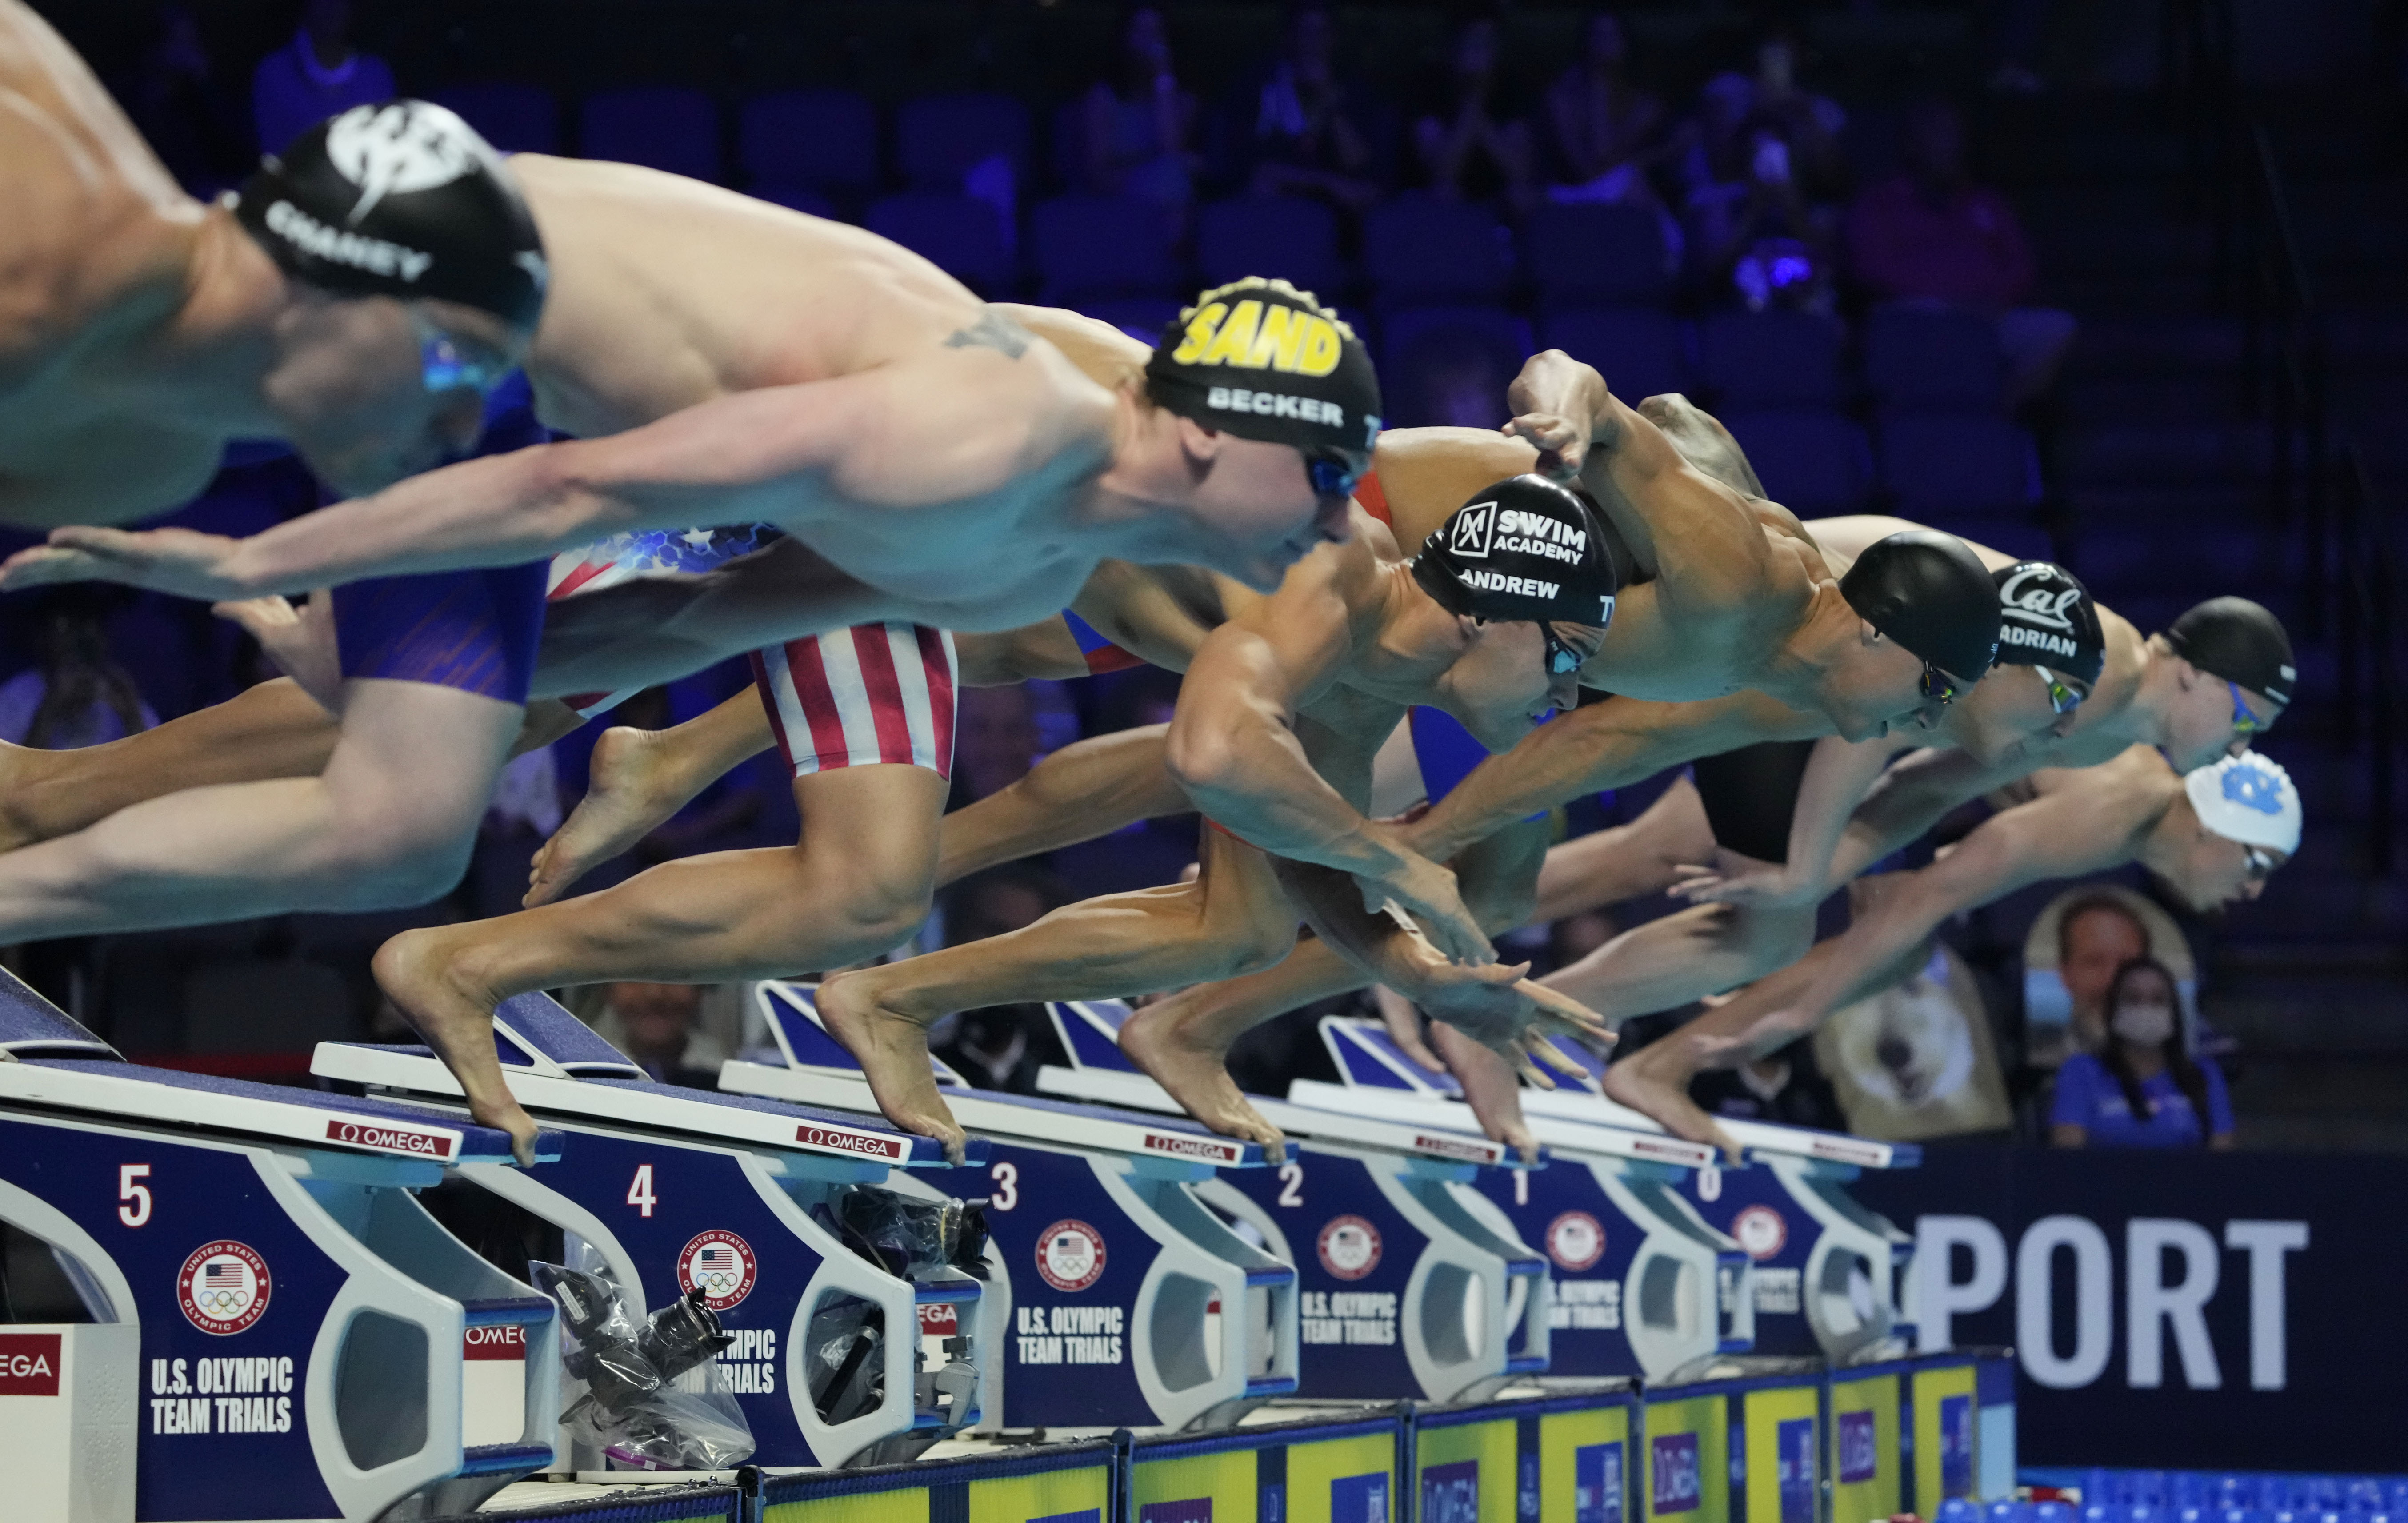 Jun 20, 2021; Omaha, Nebraska, USA; Michael Andrew dives off the starting block for the men's 50m freestyle during the U.S. Olympic Team Trials Swimming competition at CHI Health Center Omaha. Mandatory Credit: Rob Schumacher-USA TODAY Sports